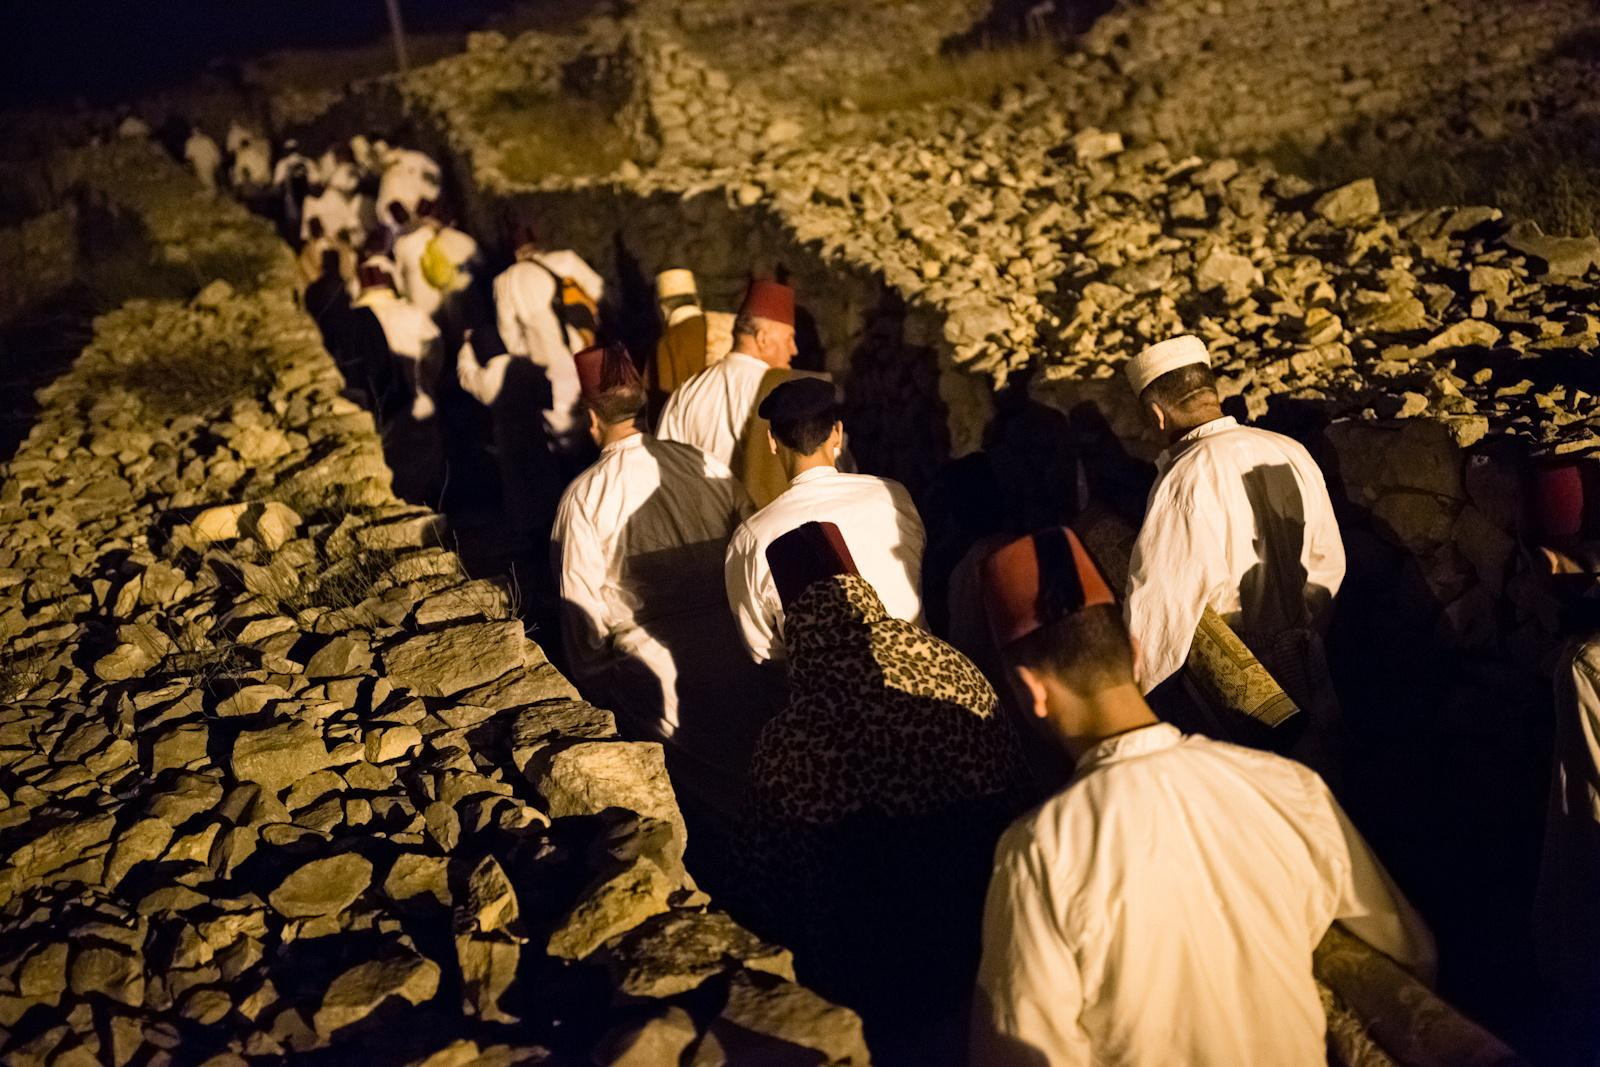 NABLUS, PALESTINIAN TERRITORIES - APRIL 27, 2016: Samaritans take part in a pilgrimage marking the holiday of Passover at Mount Gerizim on the outskirts of the West City of Nablus April 27, 2016. The Samaritan religion is descended from the ancient Israelite tribes of Menashe and Efraim, and the community numbers today around 700 people, half at Mount Grizim in the West Bank and the others in Holon near Tel Aviv in Israel.